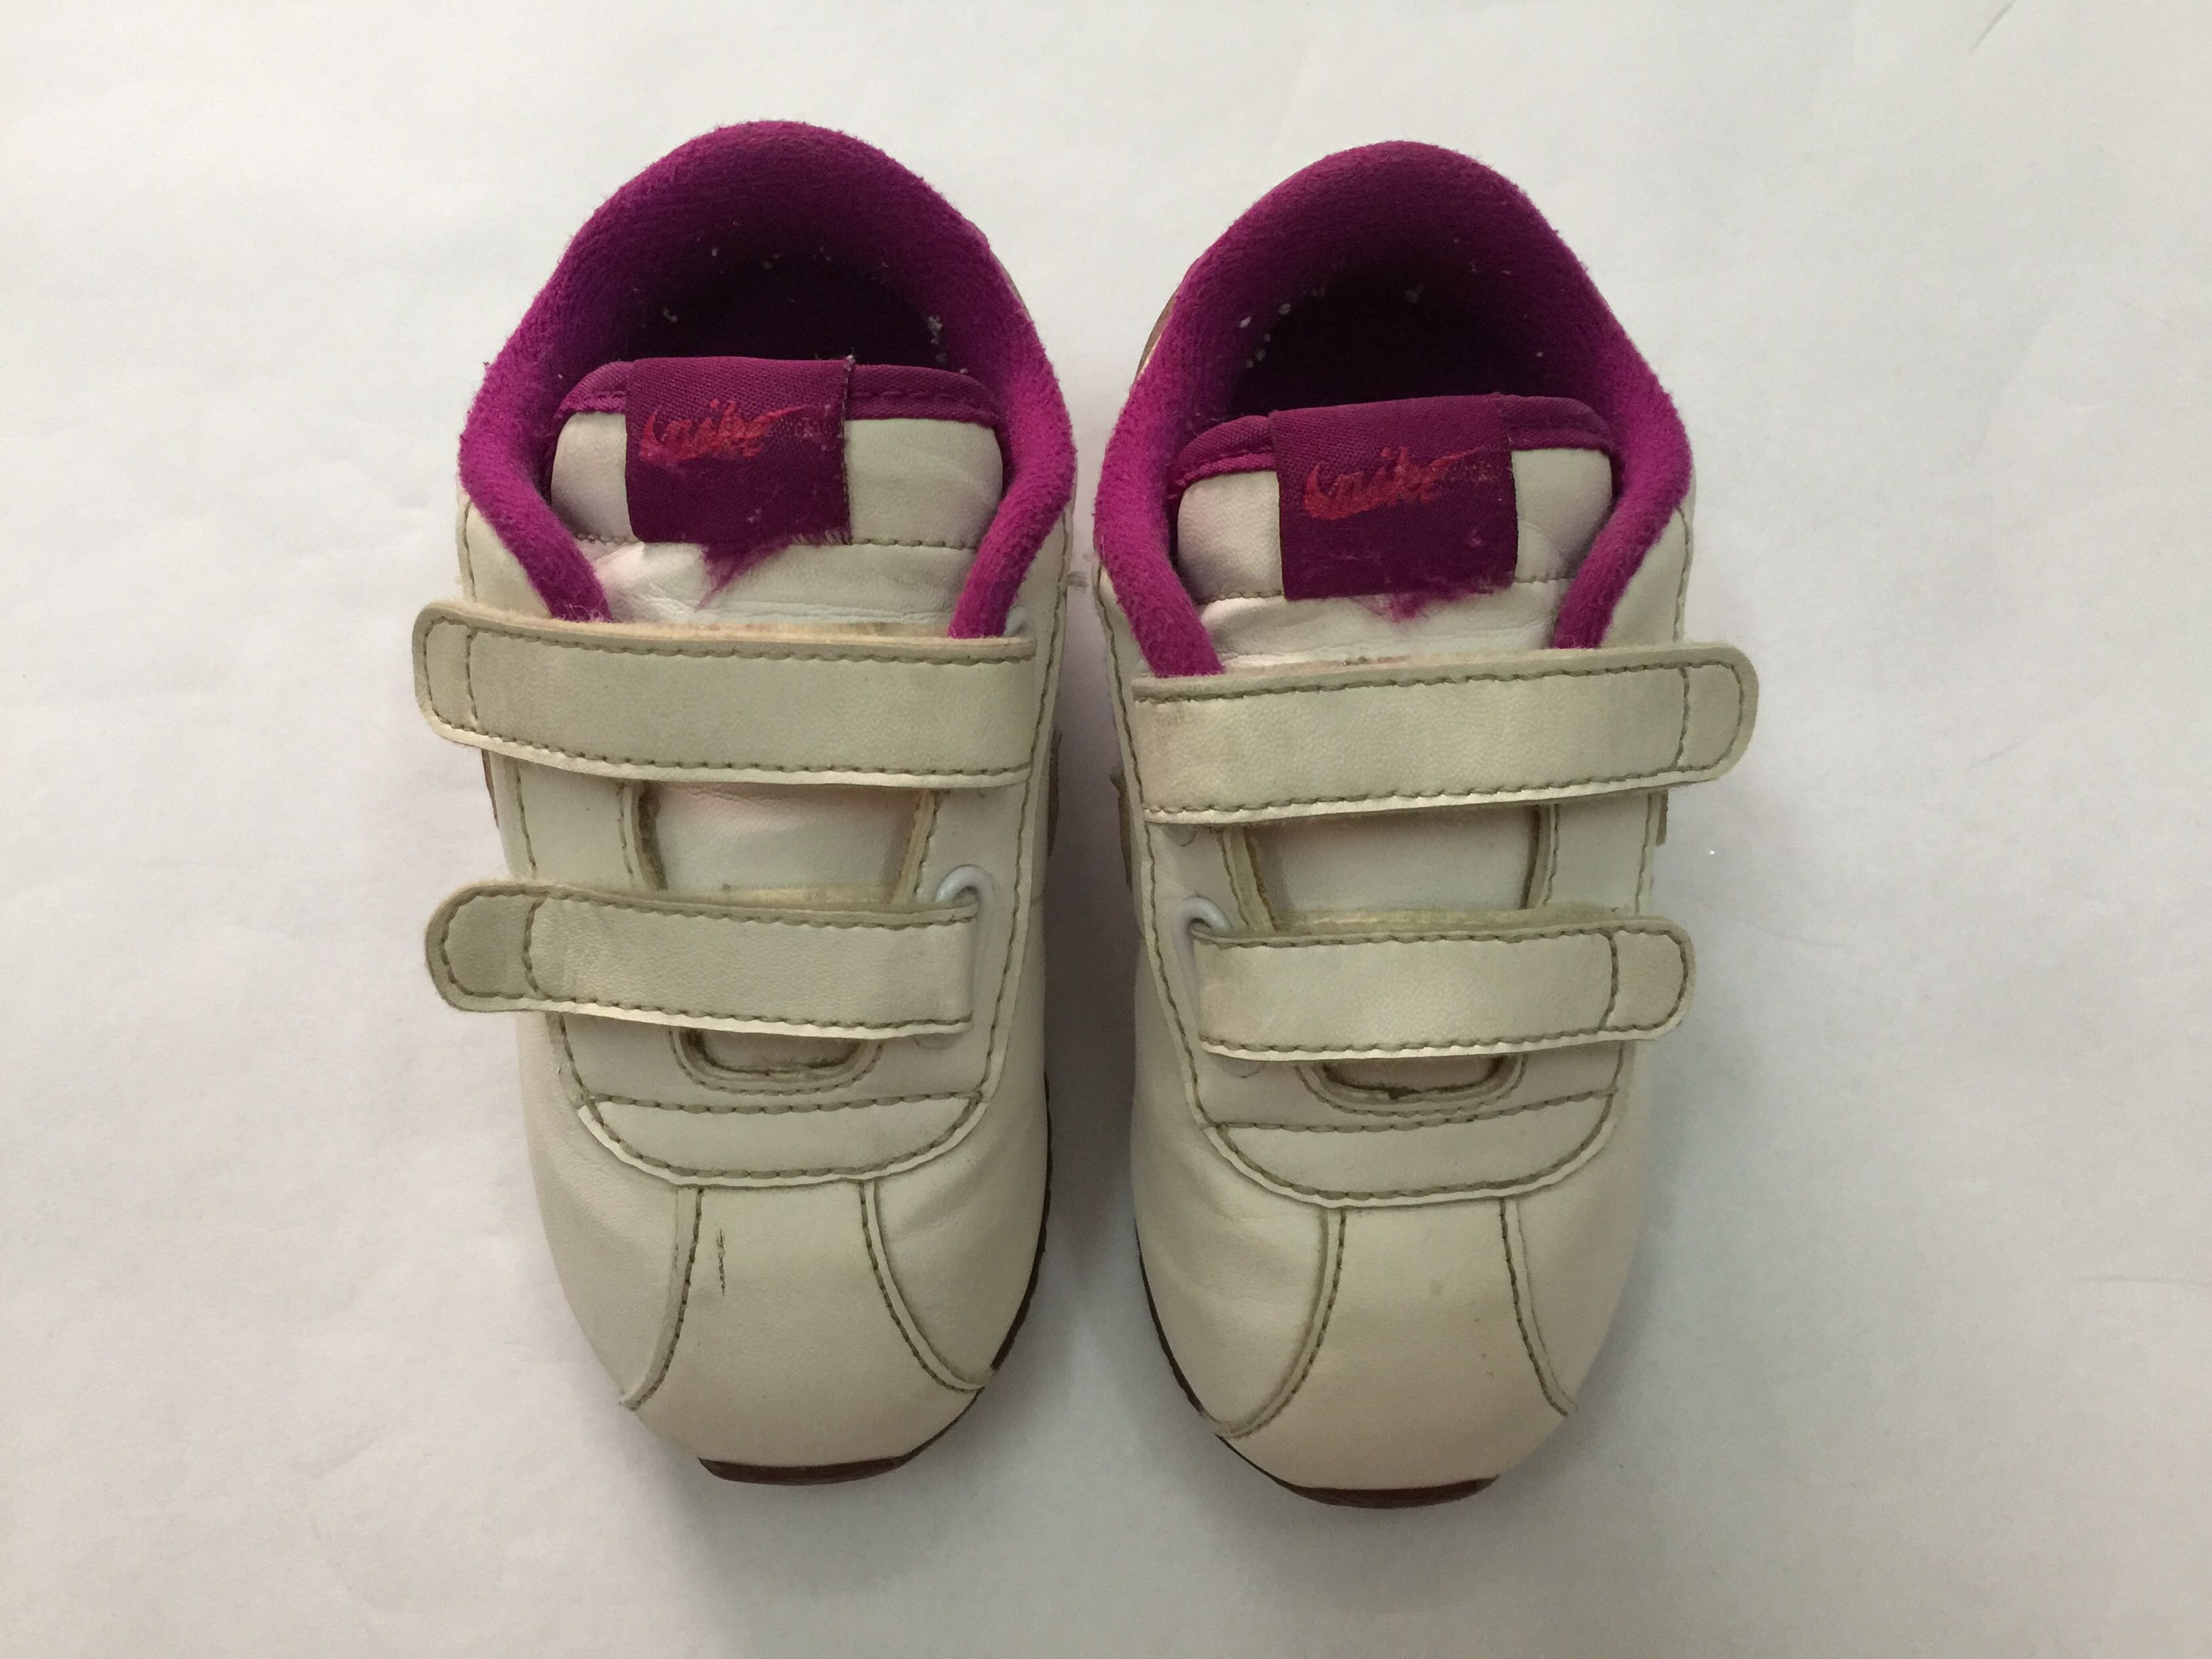 8d4d5bdc1 Pre-loved) WHITE   PURPLE - BABY GIRL - NIKE SHOES - SIZE 6.5 UK ...